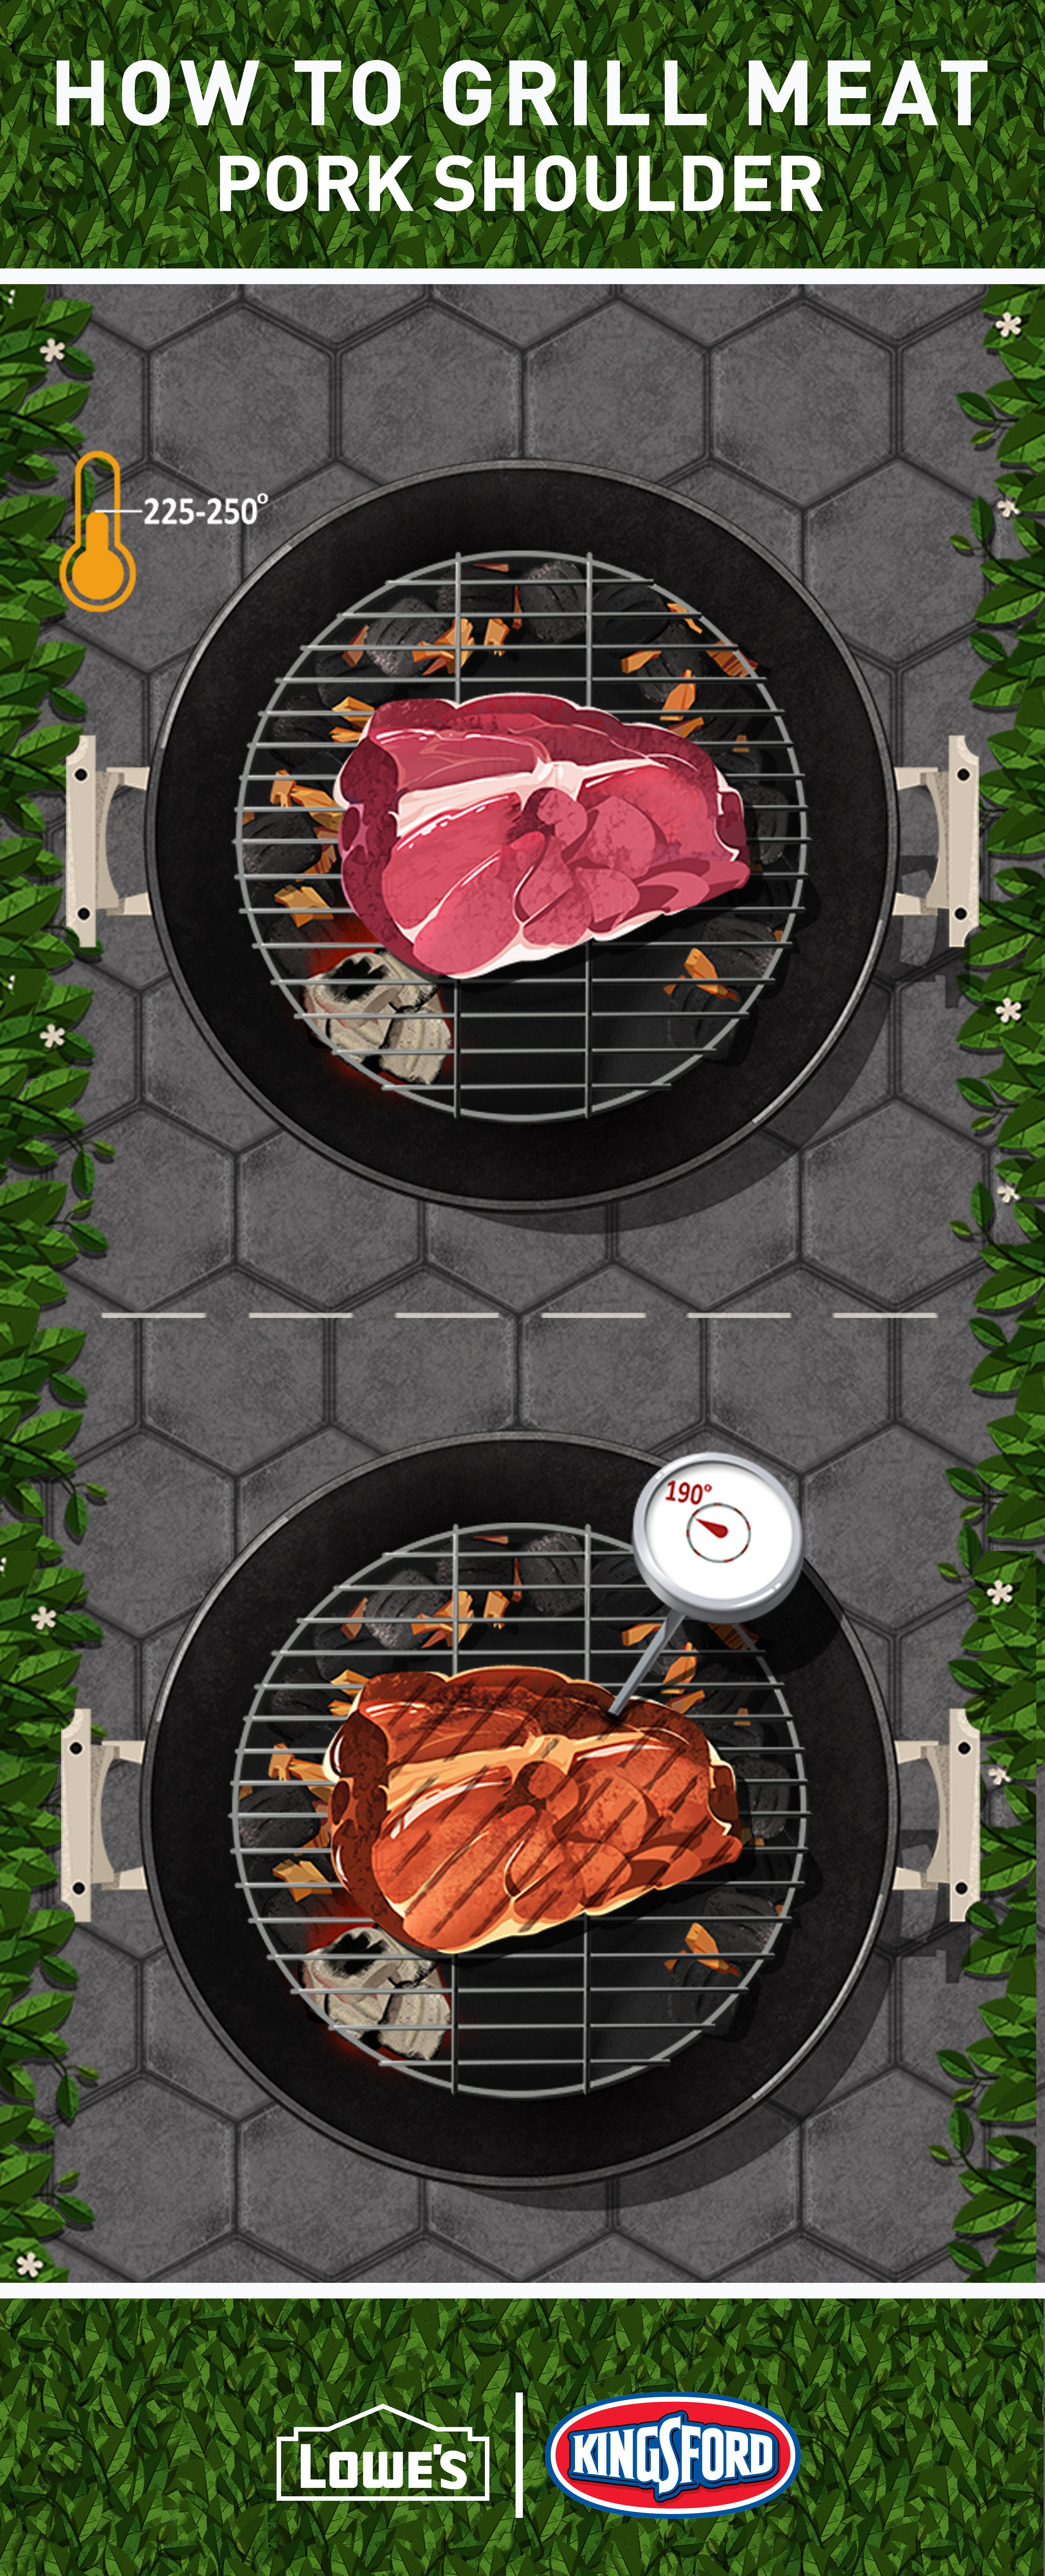 Cook your pork shoulder fat-side-up on your grill at a constant low ...